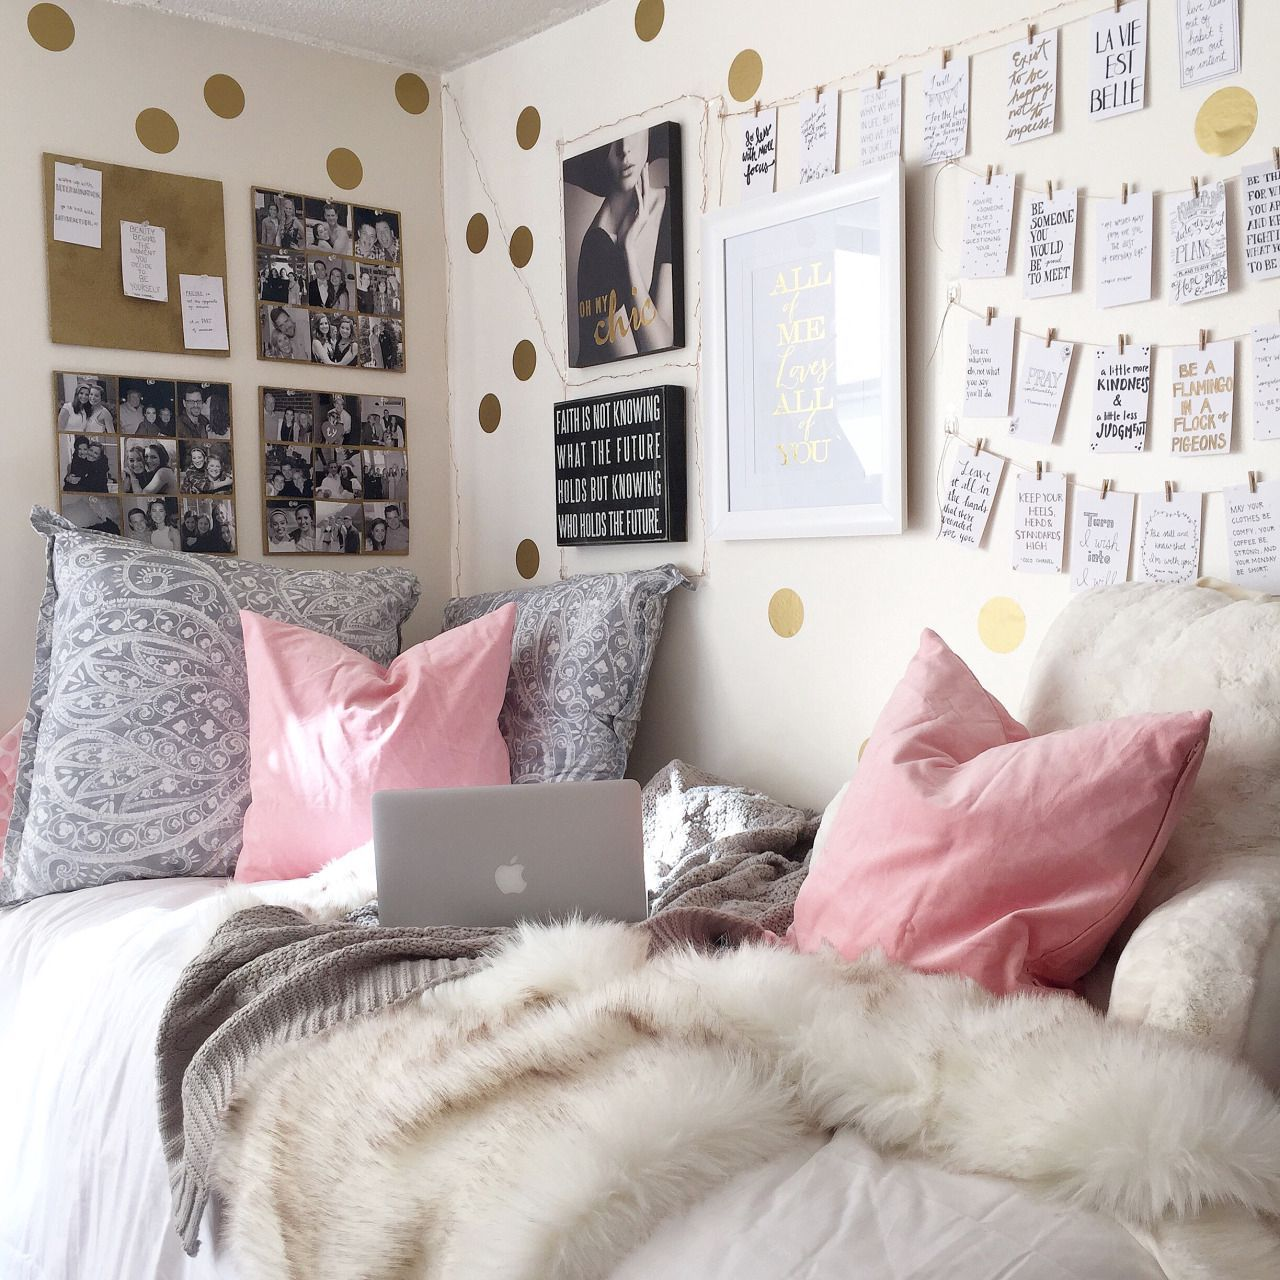 cute decorative pillows and fluffy blanket